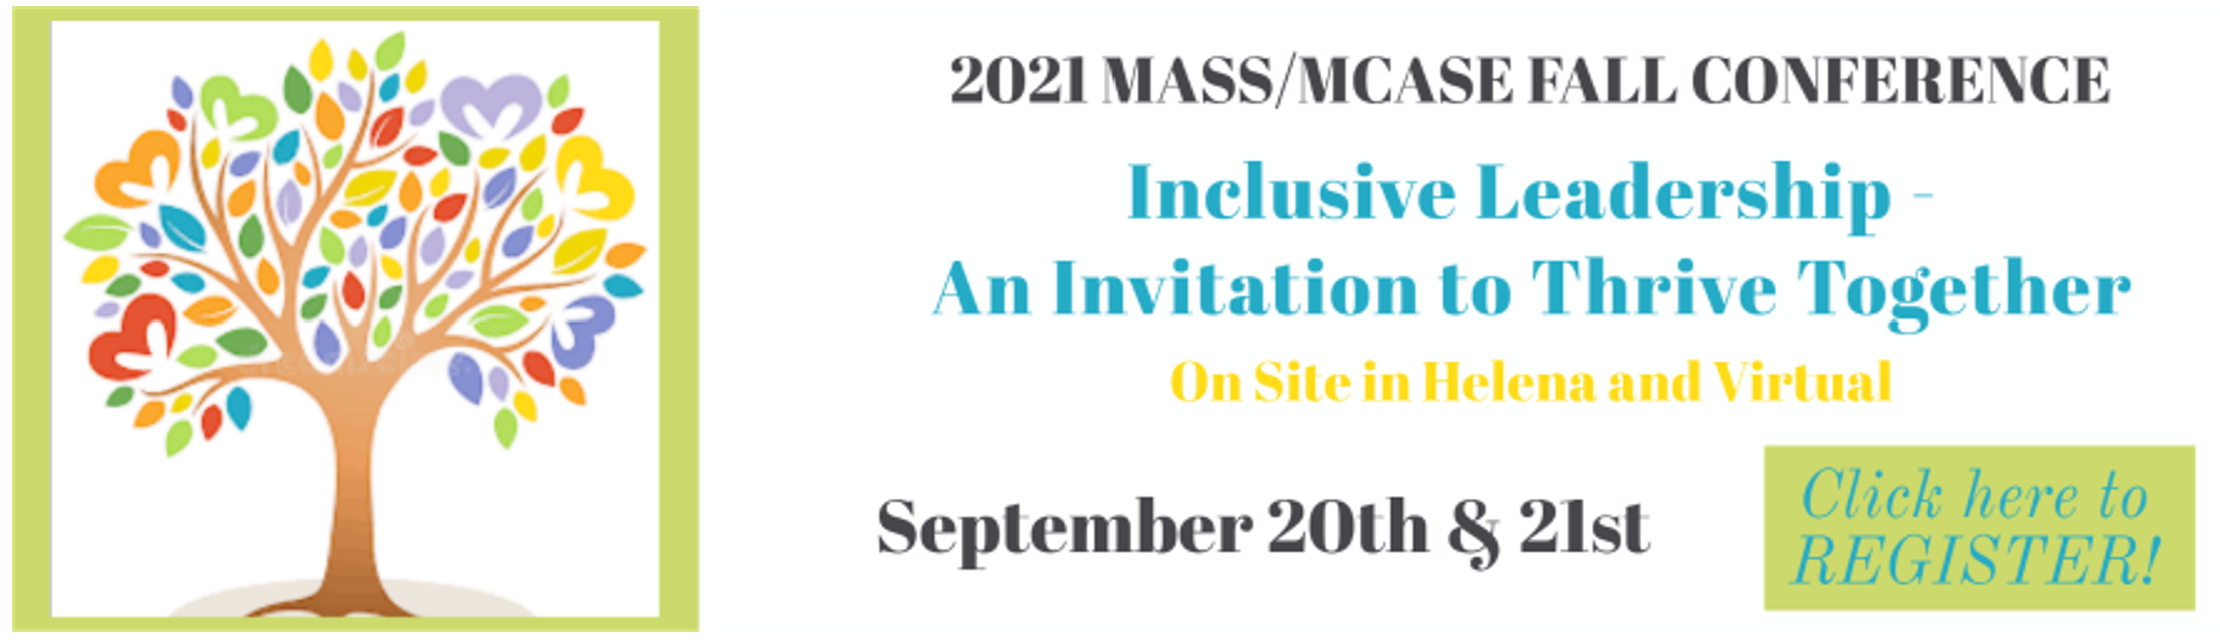 MASS_MCASE Fall Conference Image.png - 610.23 Kb